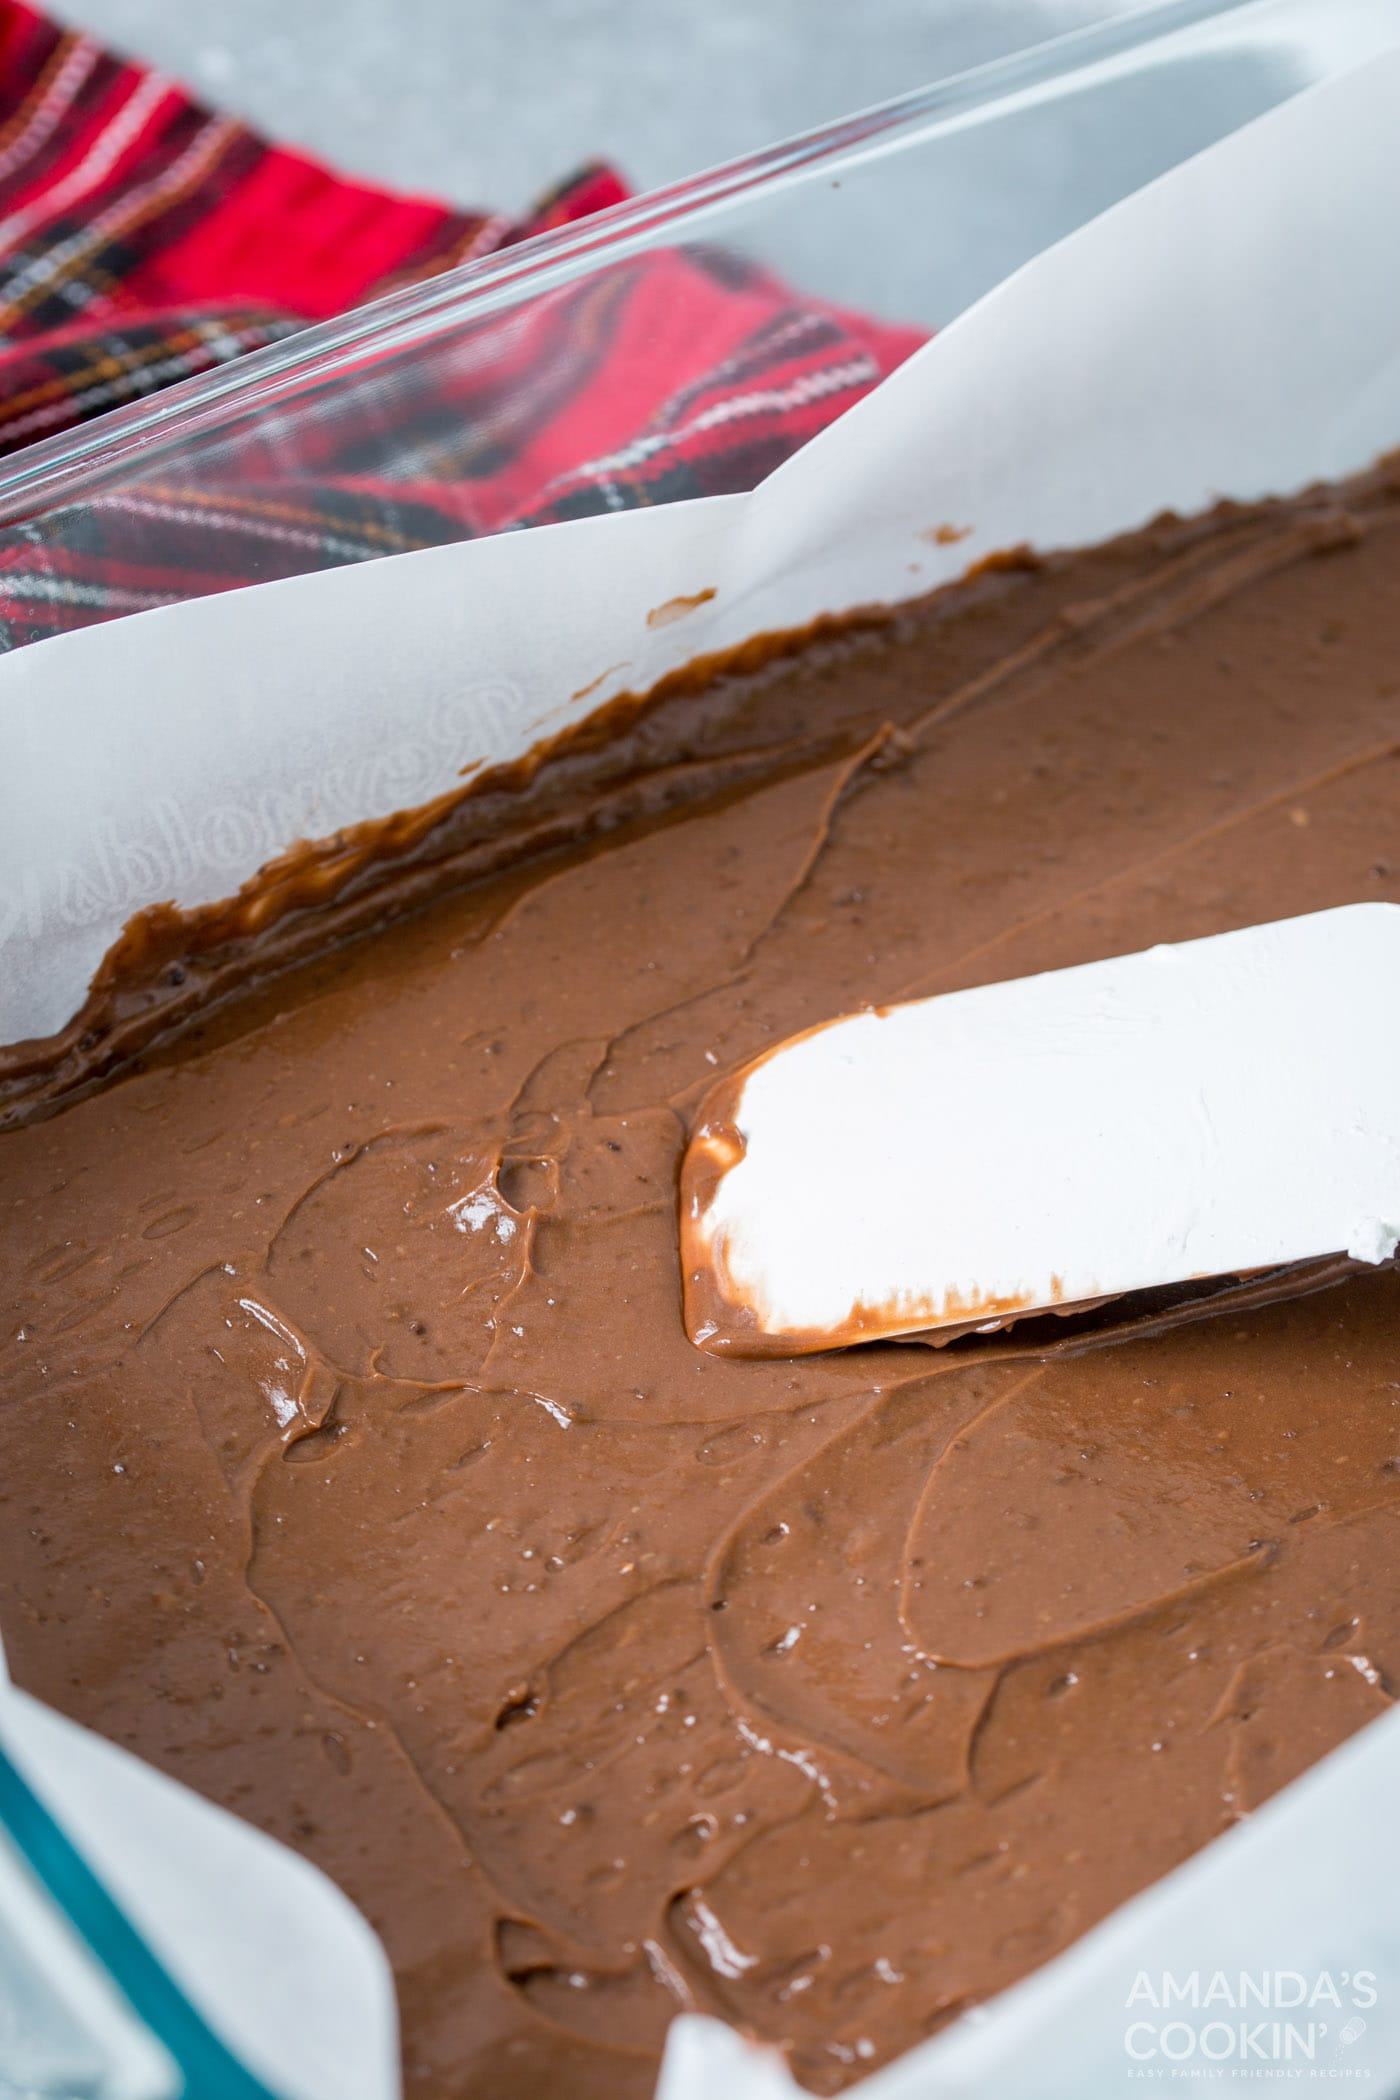 rubber spatula smoothing chocolate pudding into pan